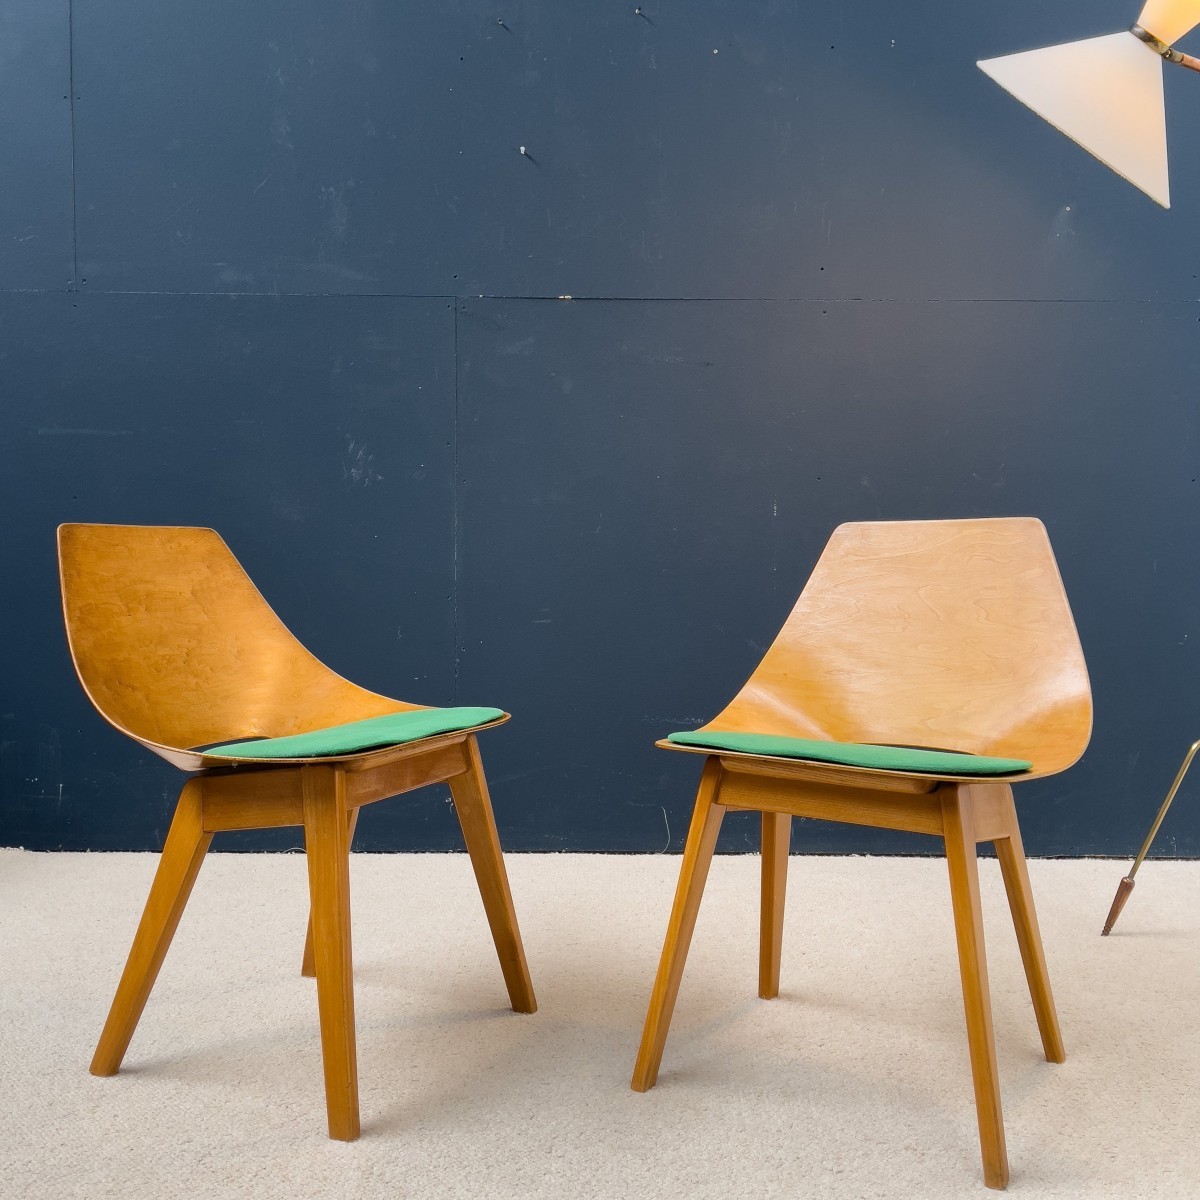 Chair by Pierre GUARICHE for STEINER